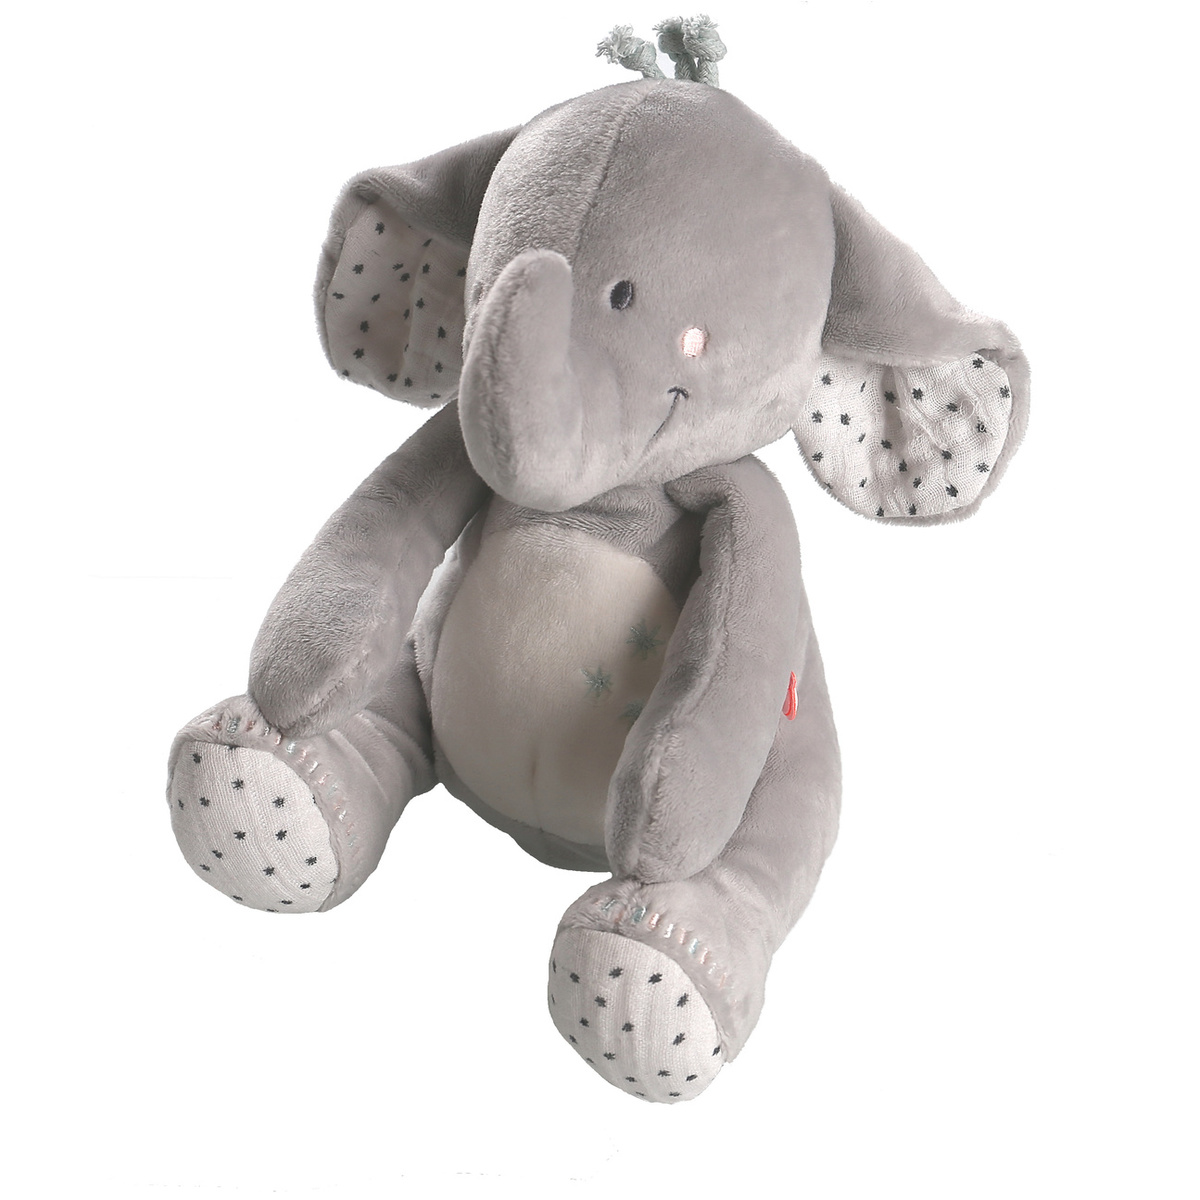 Veloudoux Anna Small soft toy from the Anna & Milo collection